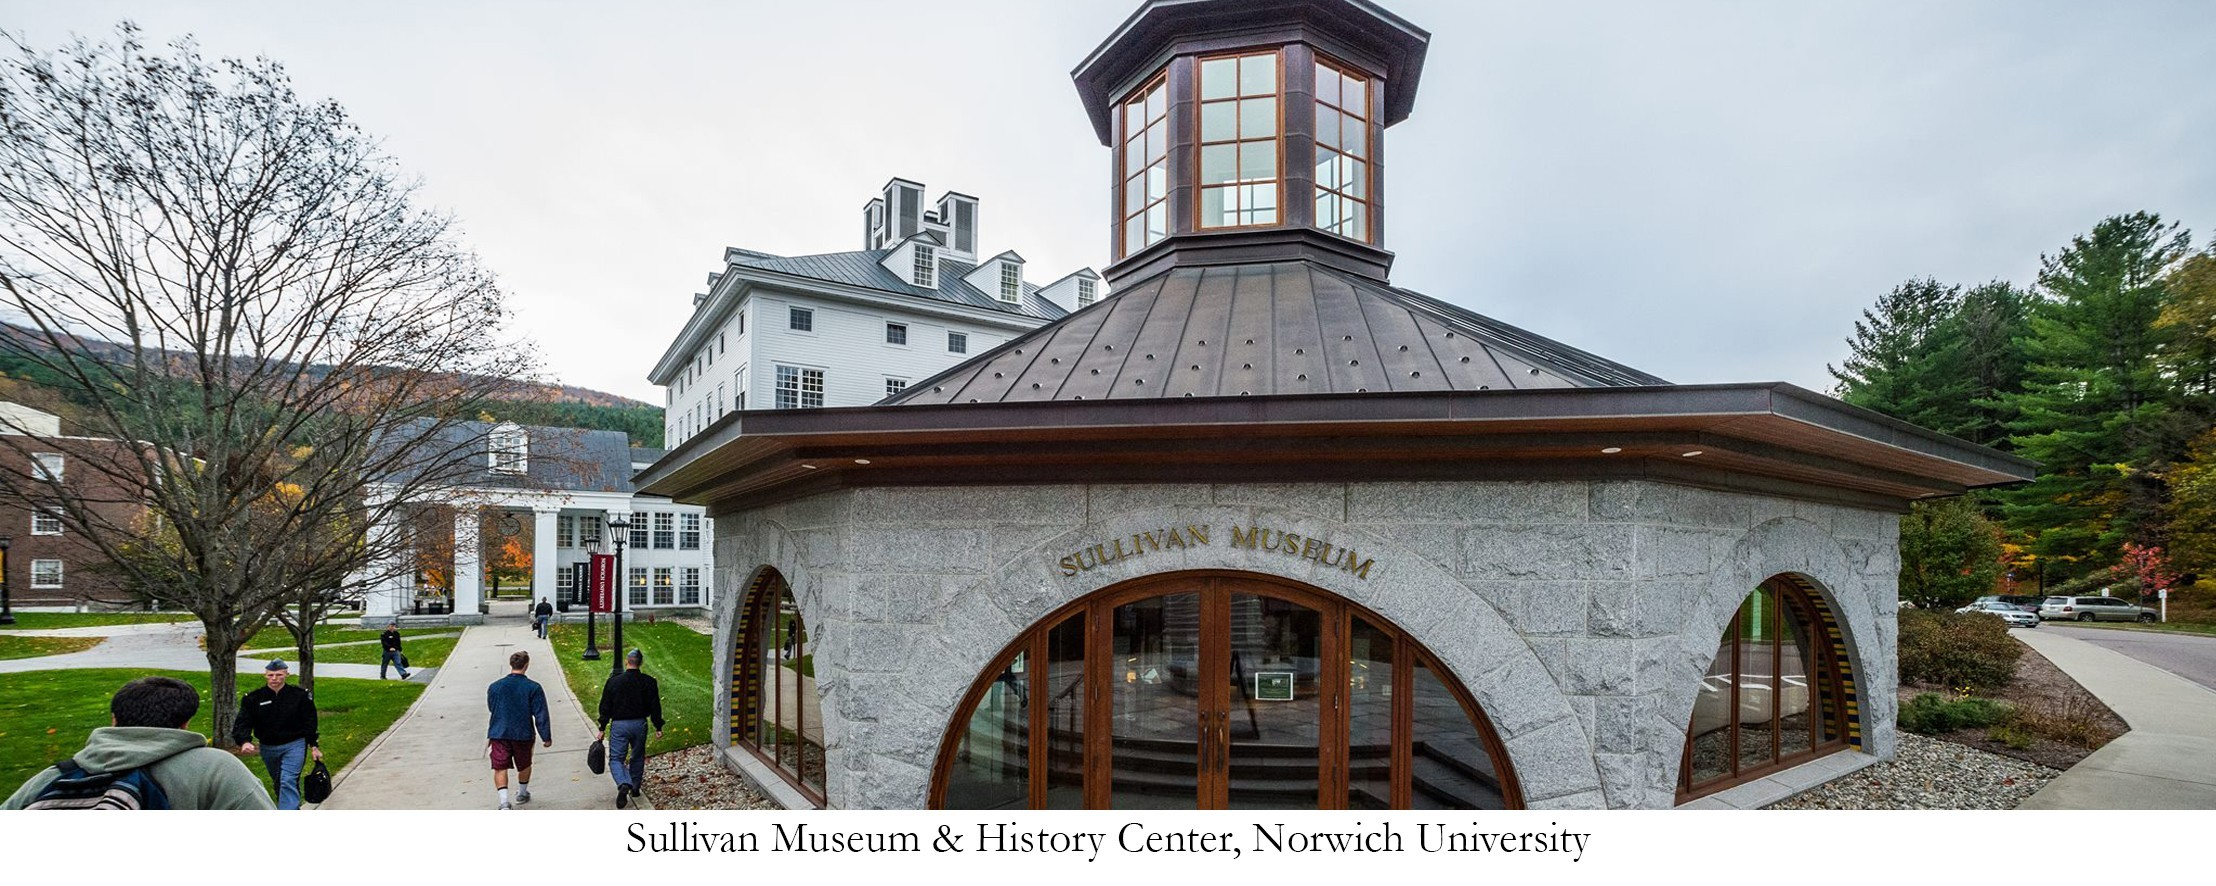 Sullivan Museum and History Center, Norwich University